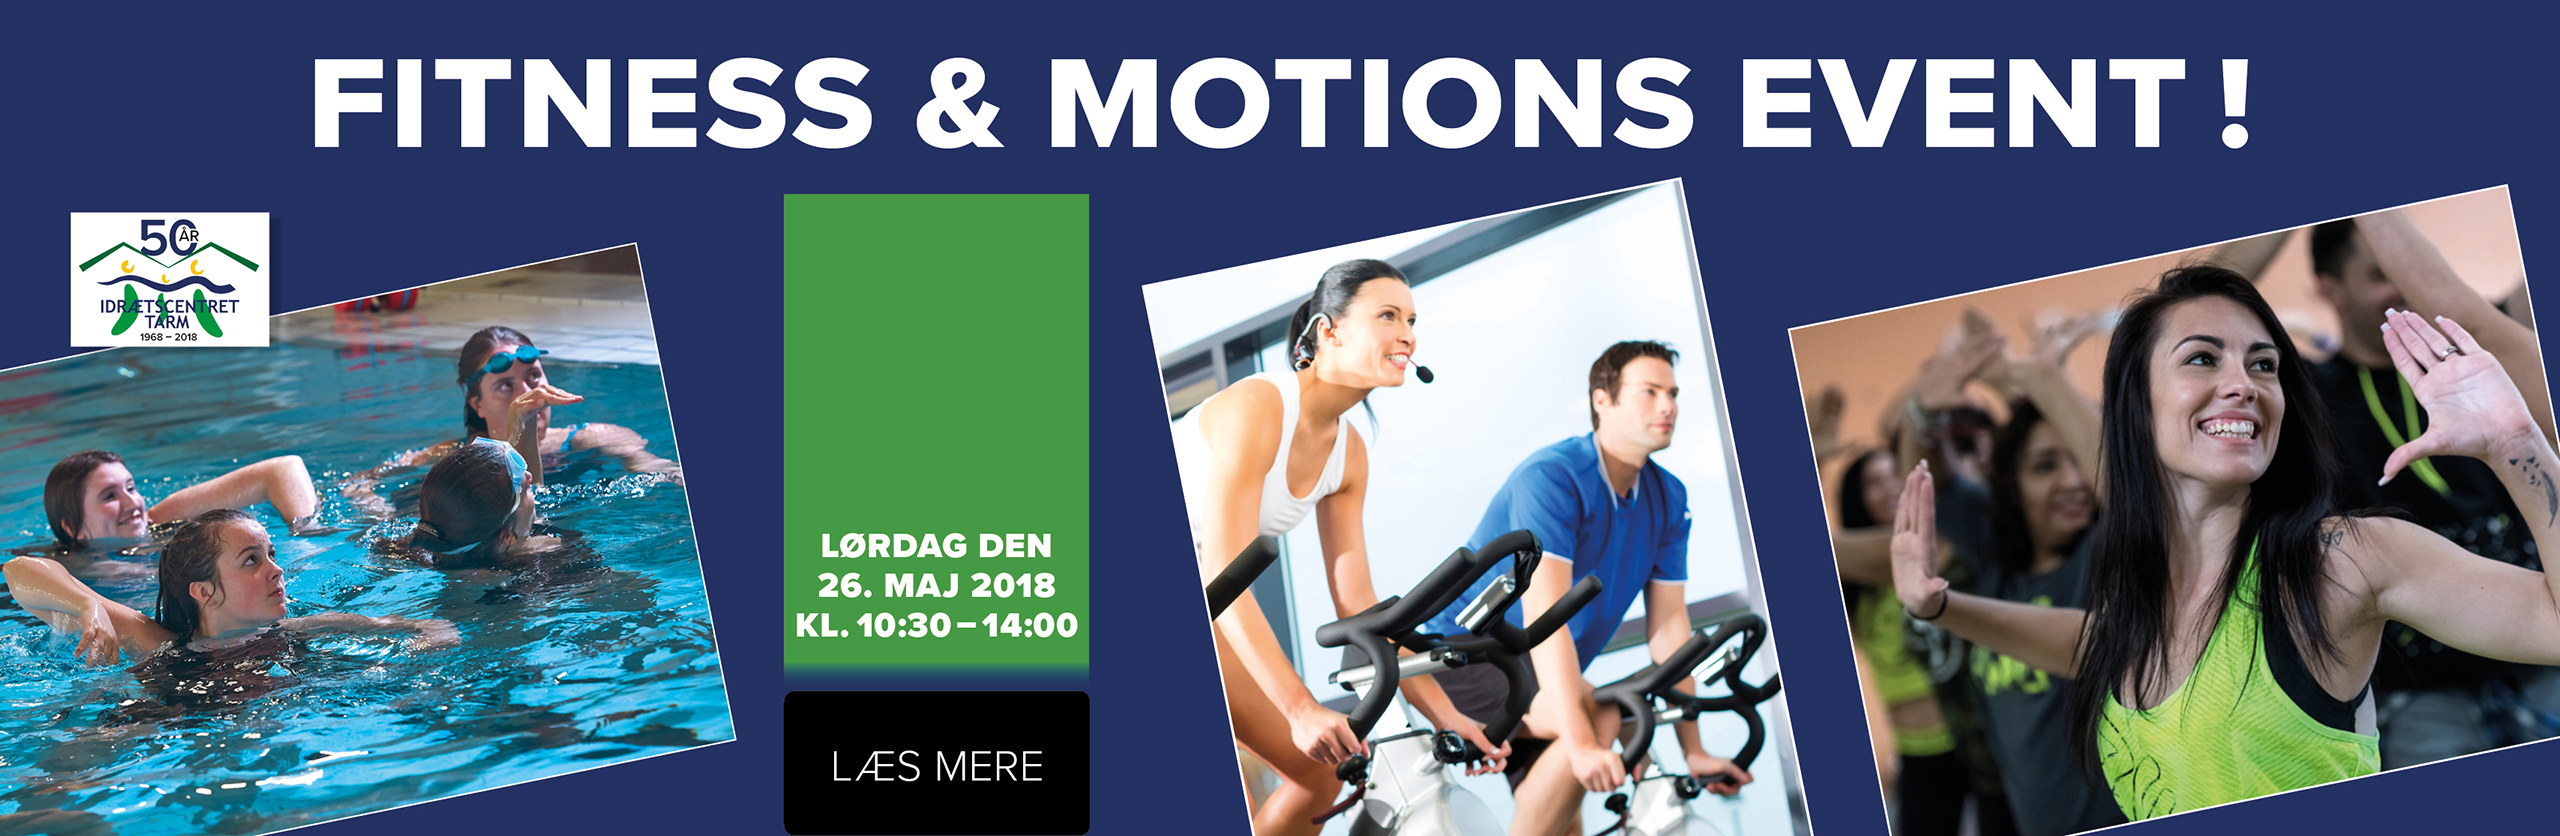 Fitness & motions event